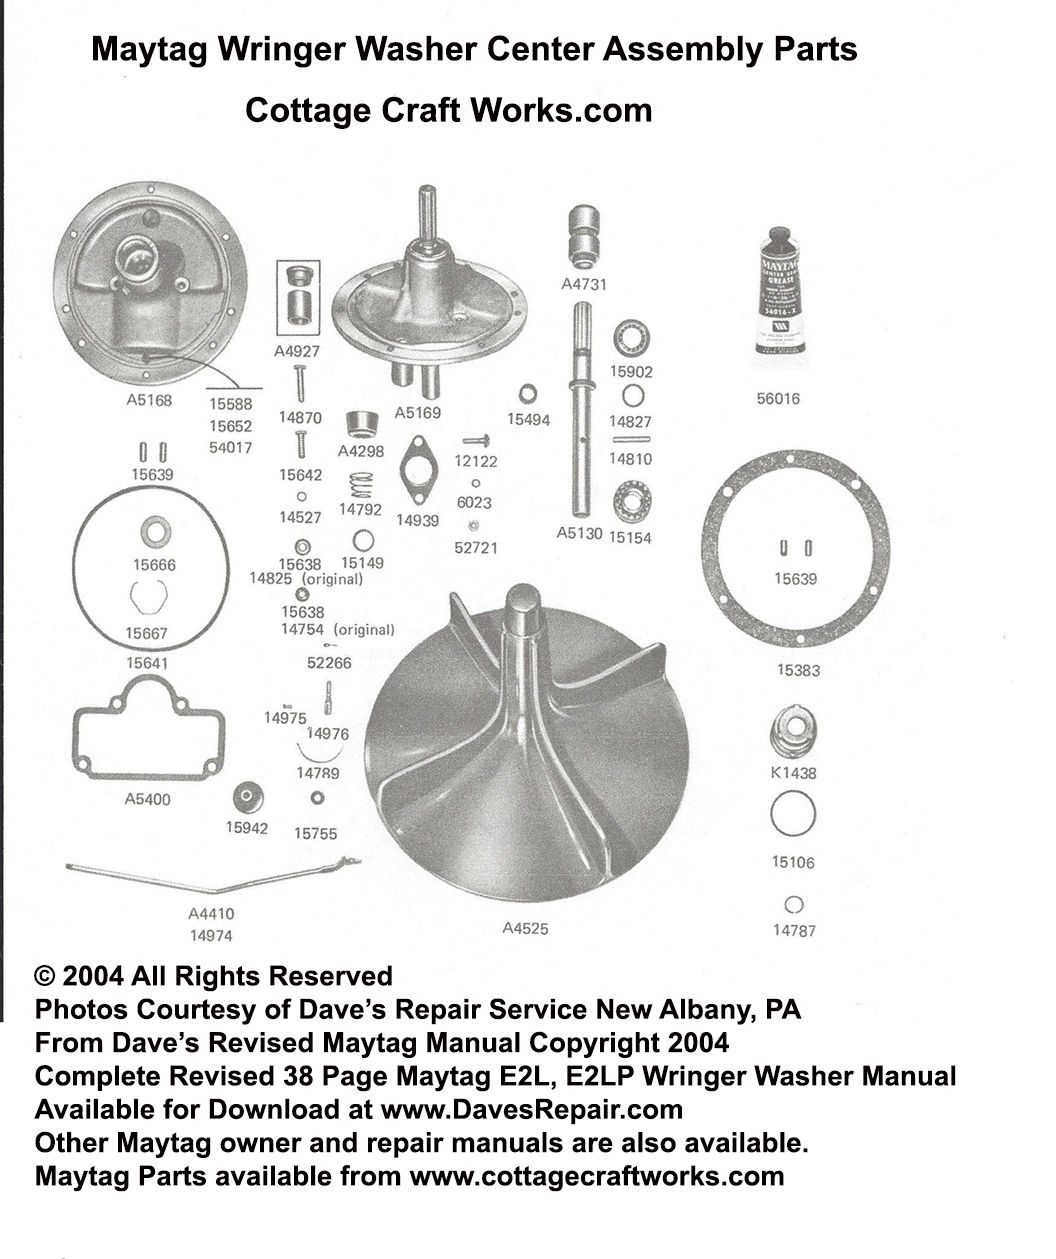 Pin By Liz On Vintage Appliance Equipment Replacement Parts Wringer Washer Wringer Maytag